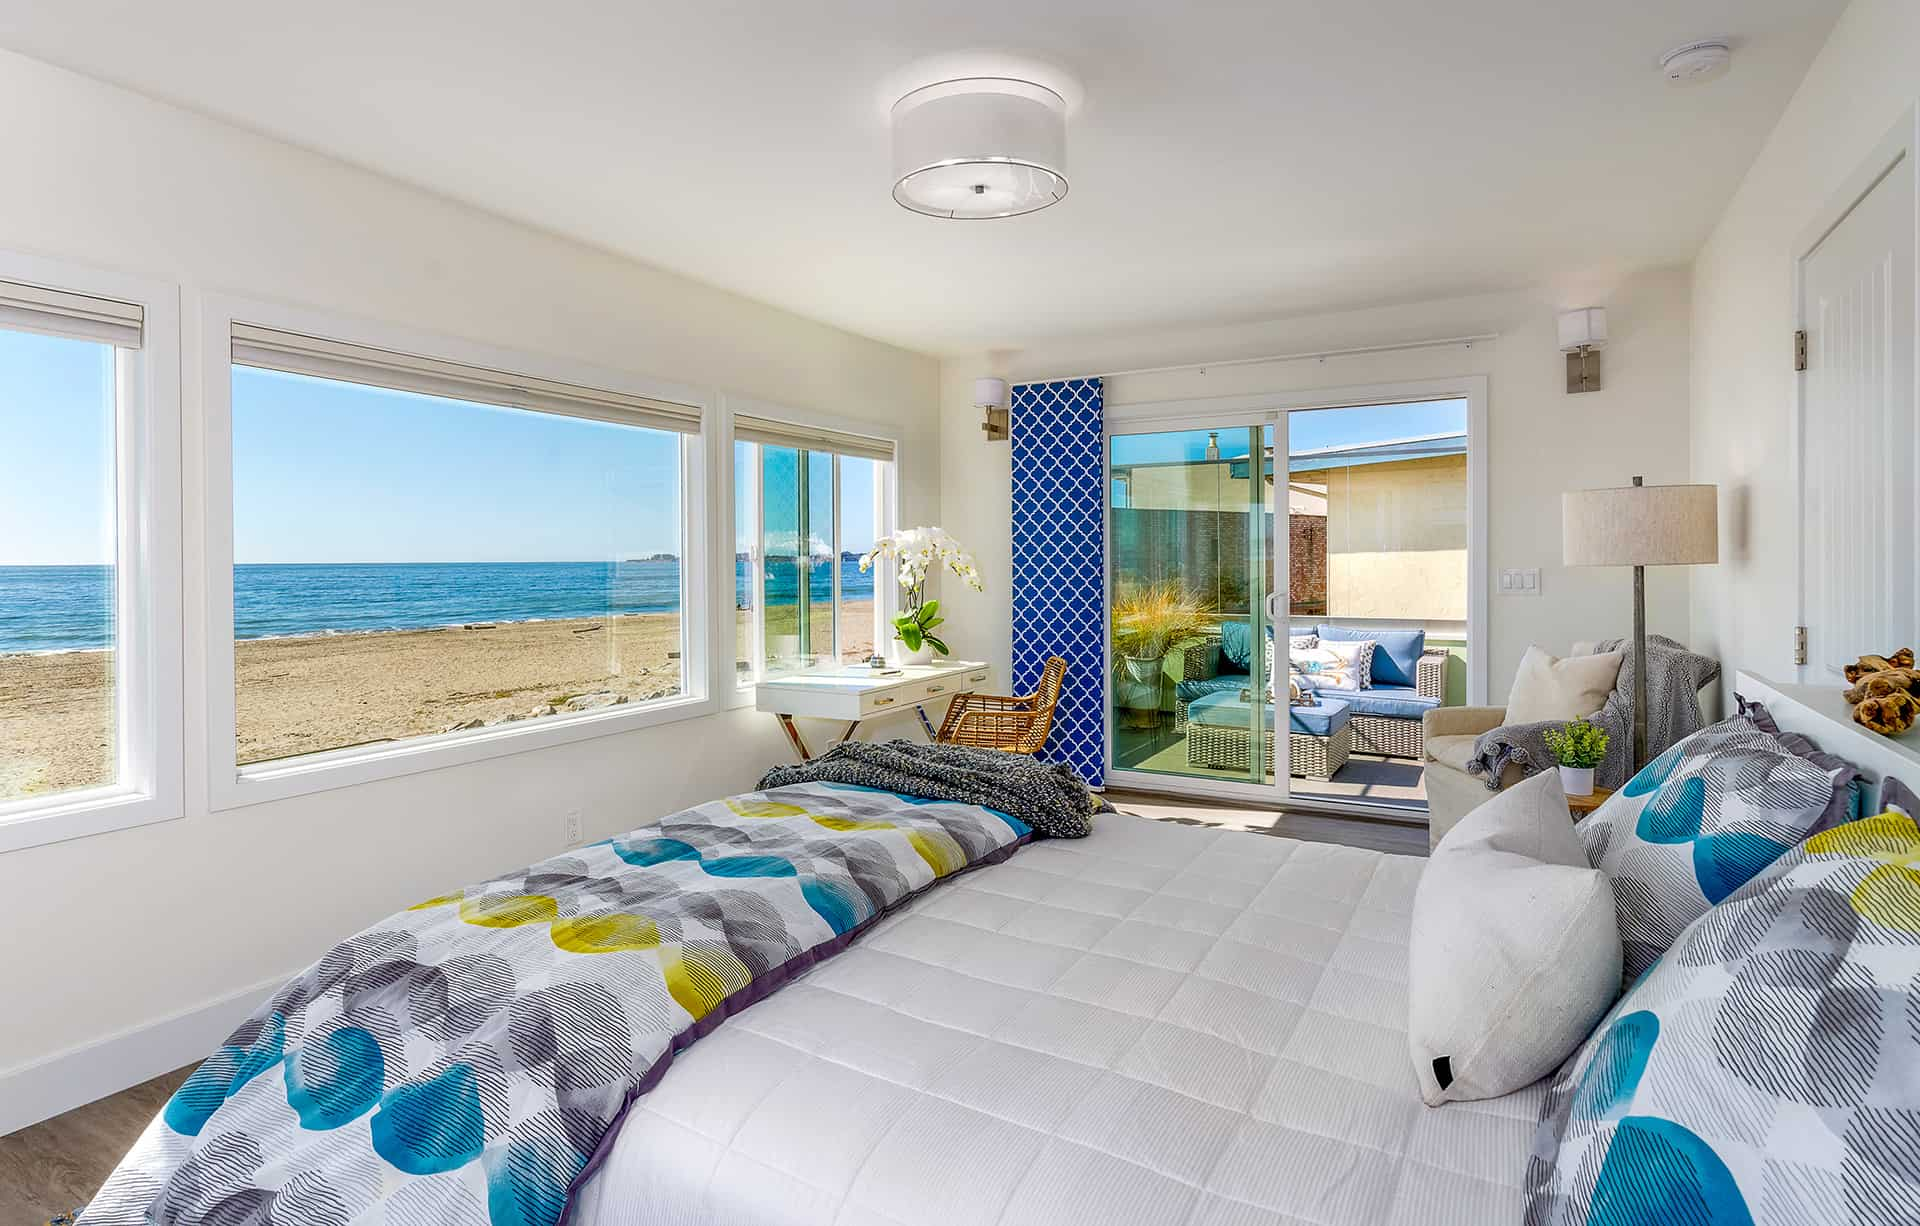 Fall asleep to the sound of waves in this bedroom renovation